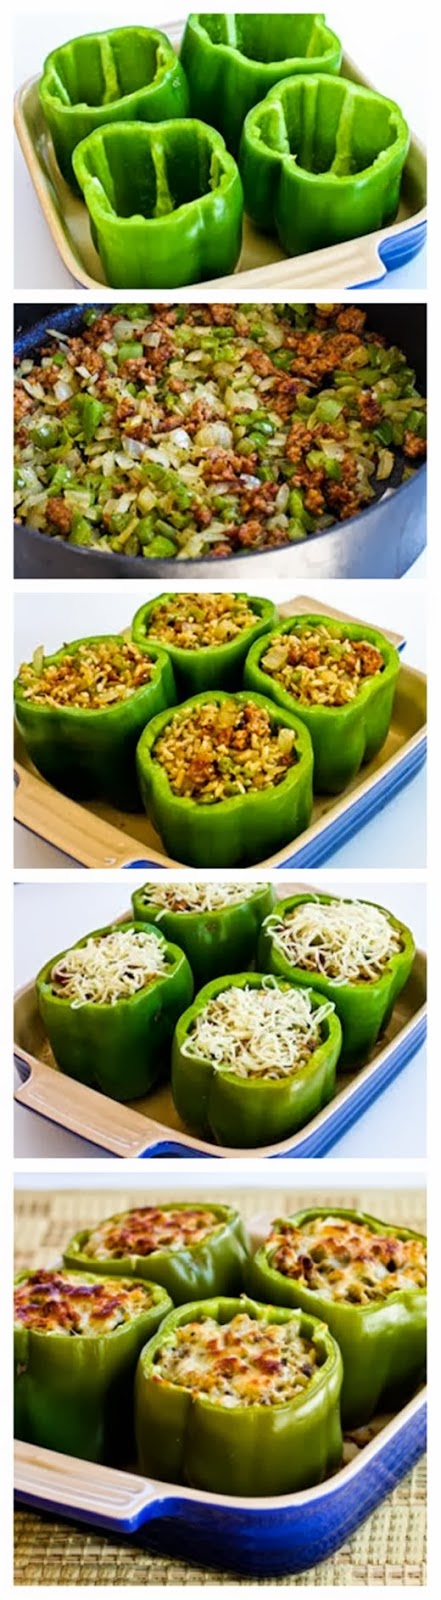 Brown Rice Casserole With Turkey Italian Sausage And Green Bell Pepper ...